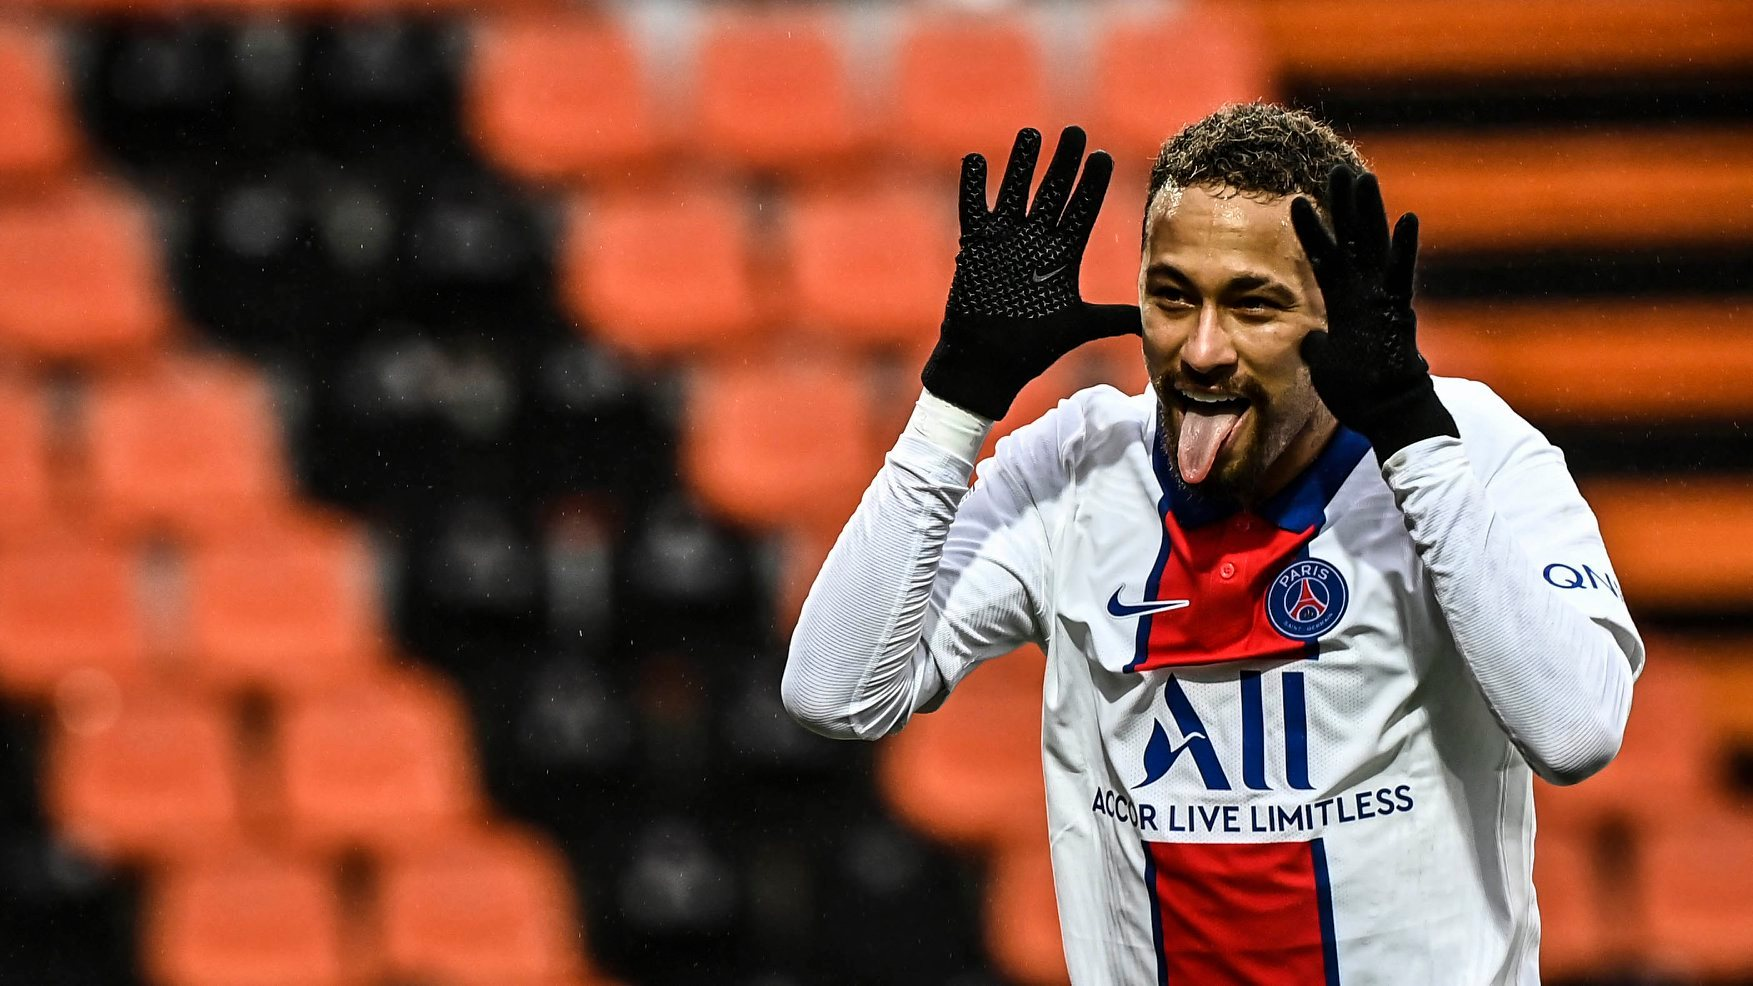 Neymar is expected to sign a contract extension with PSG until 2027, per L'Equipe  - Bóng Đá